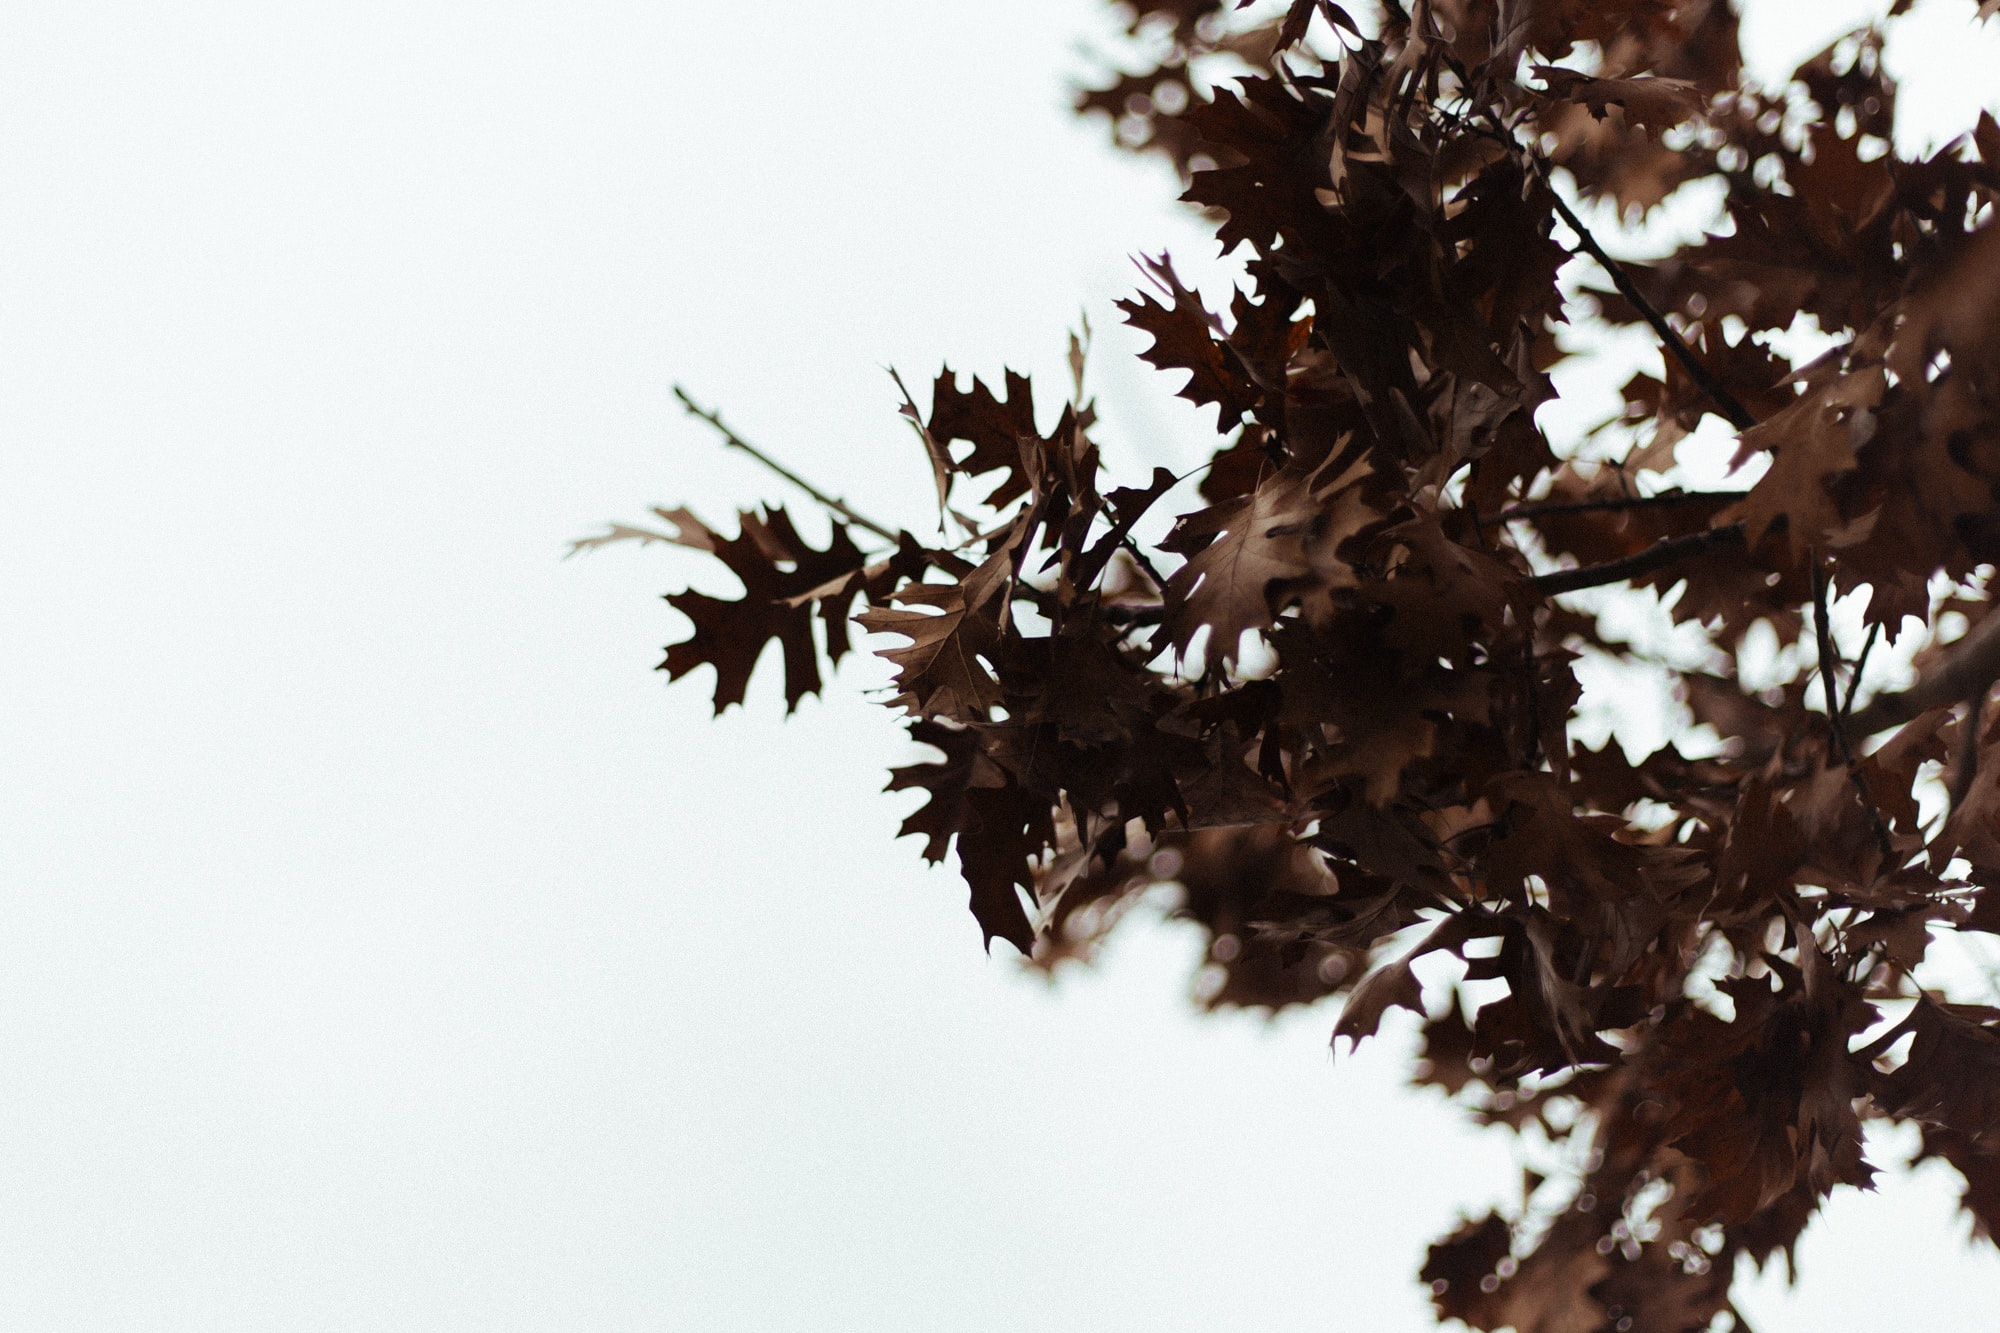 Dark brown oak leaves on branches against a white background